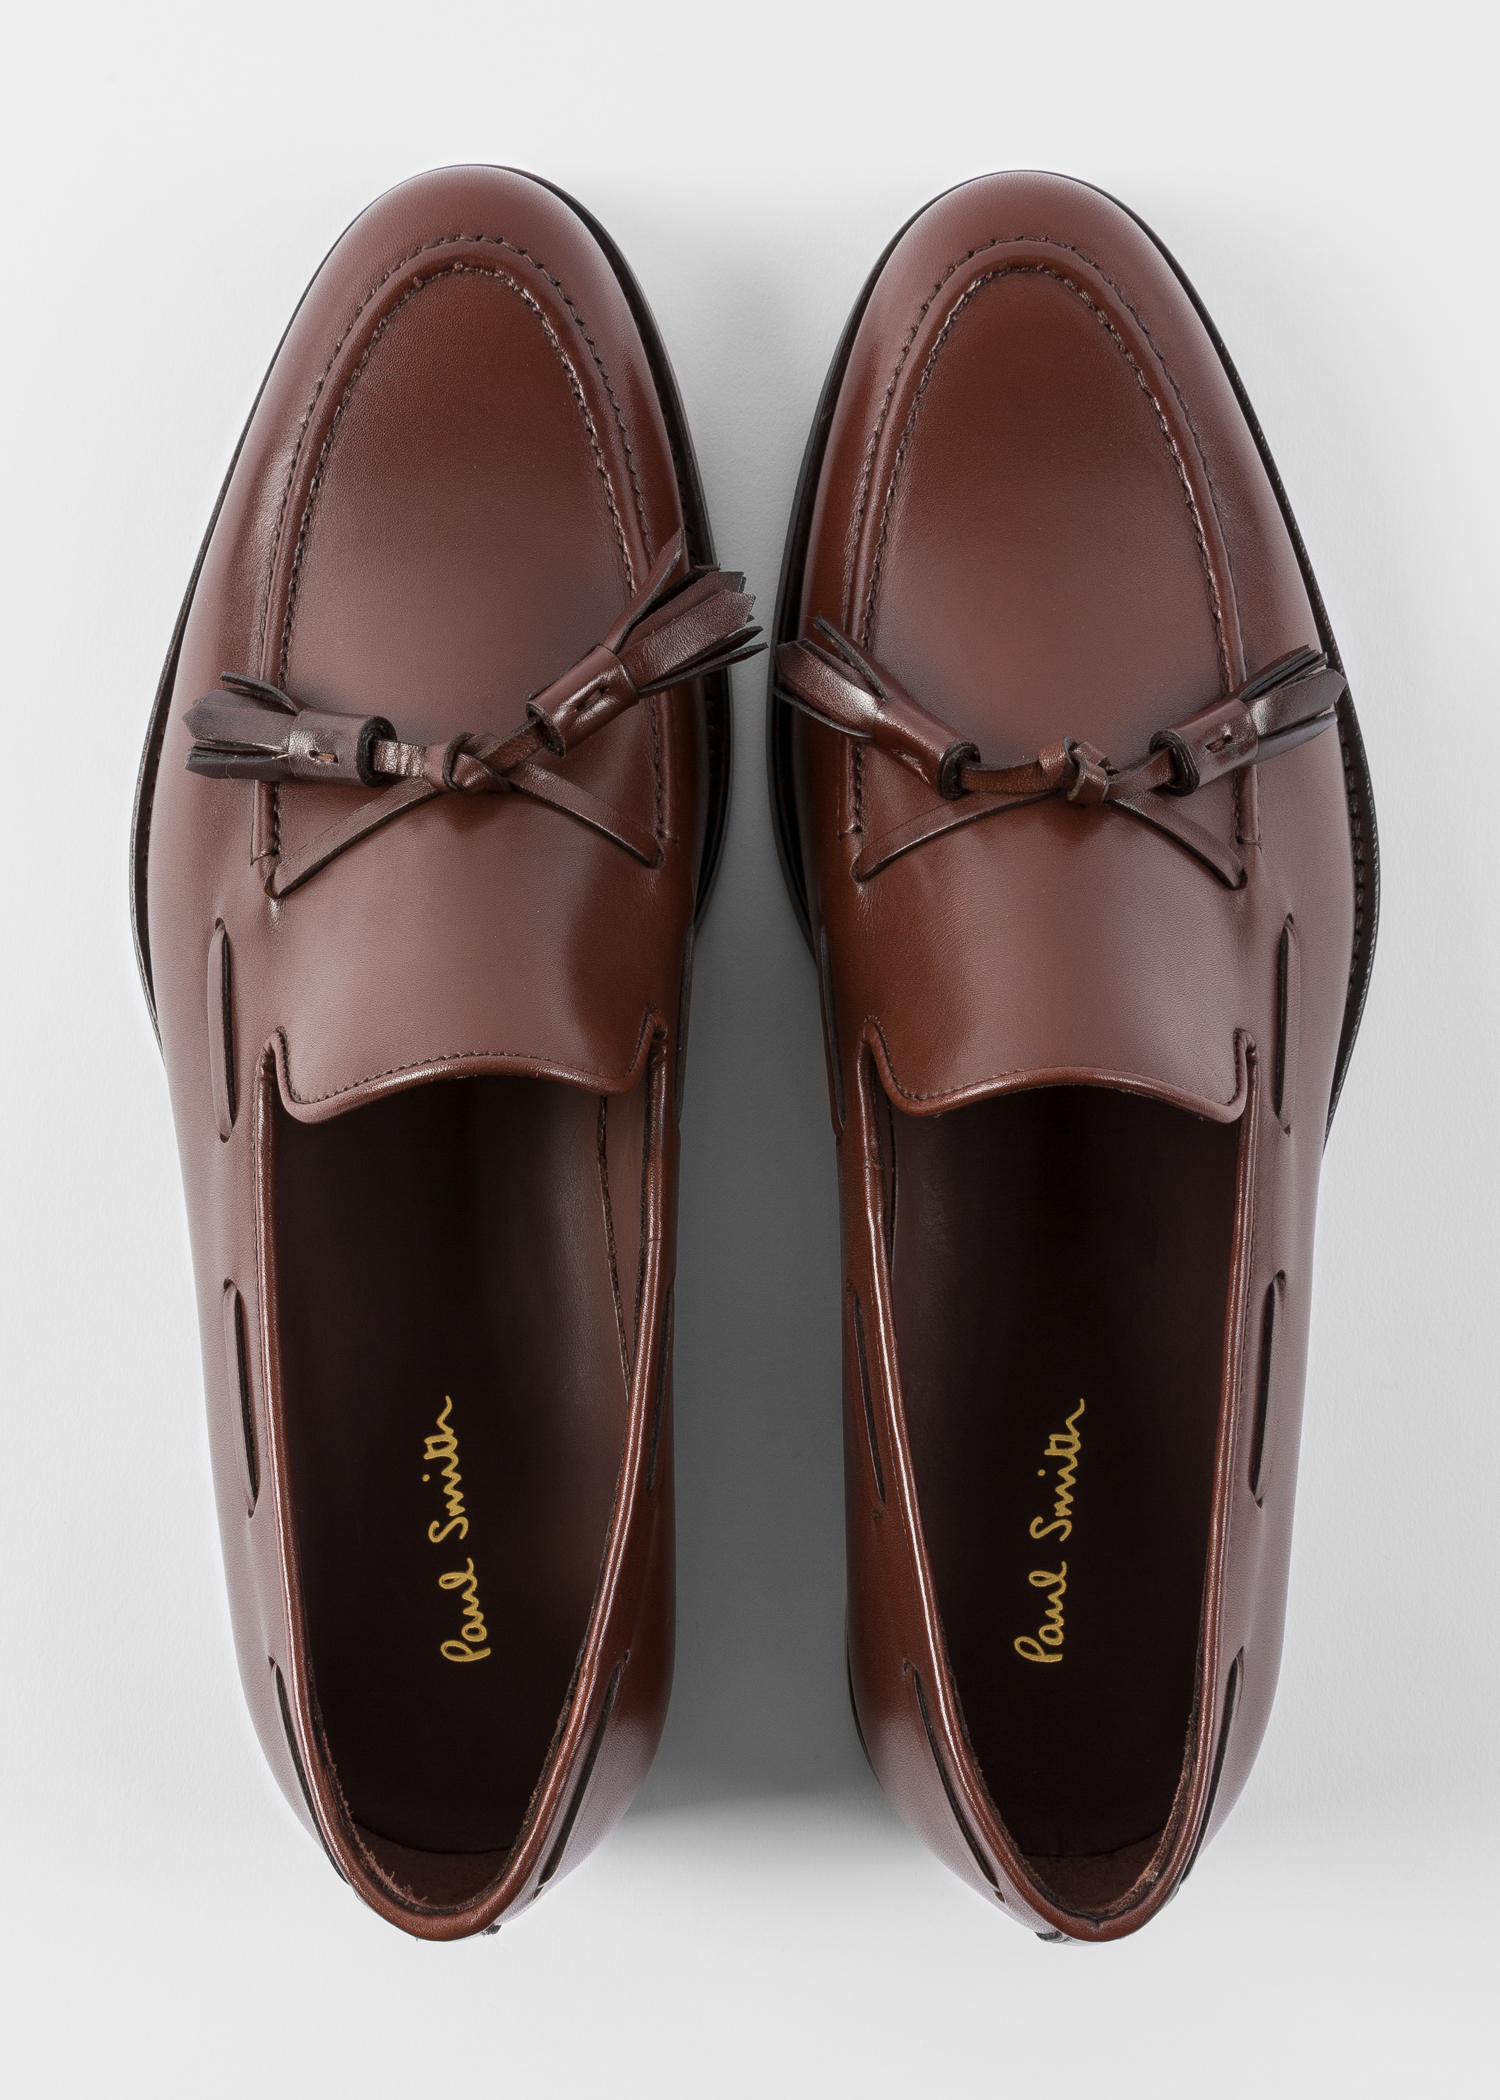 84a2ab6fbfa Front view - Men s Dark Brown Leather  Larry  Tasseled Loafers Paul Smith